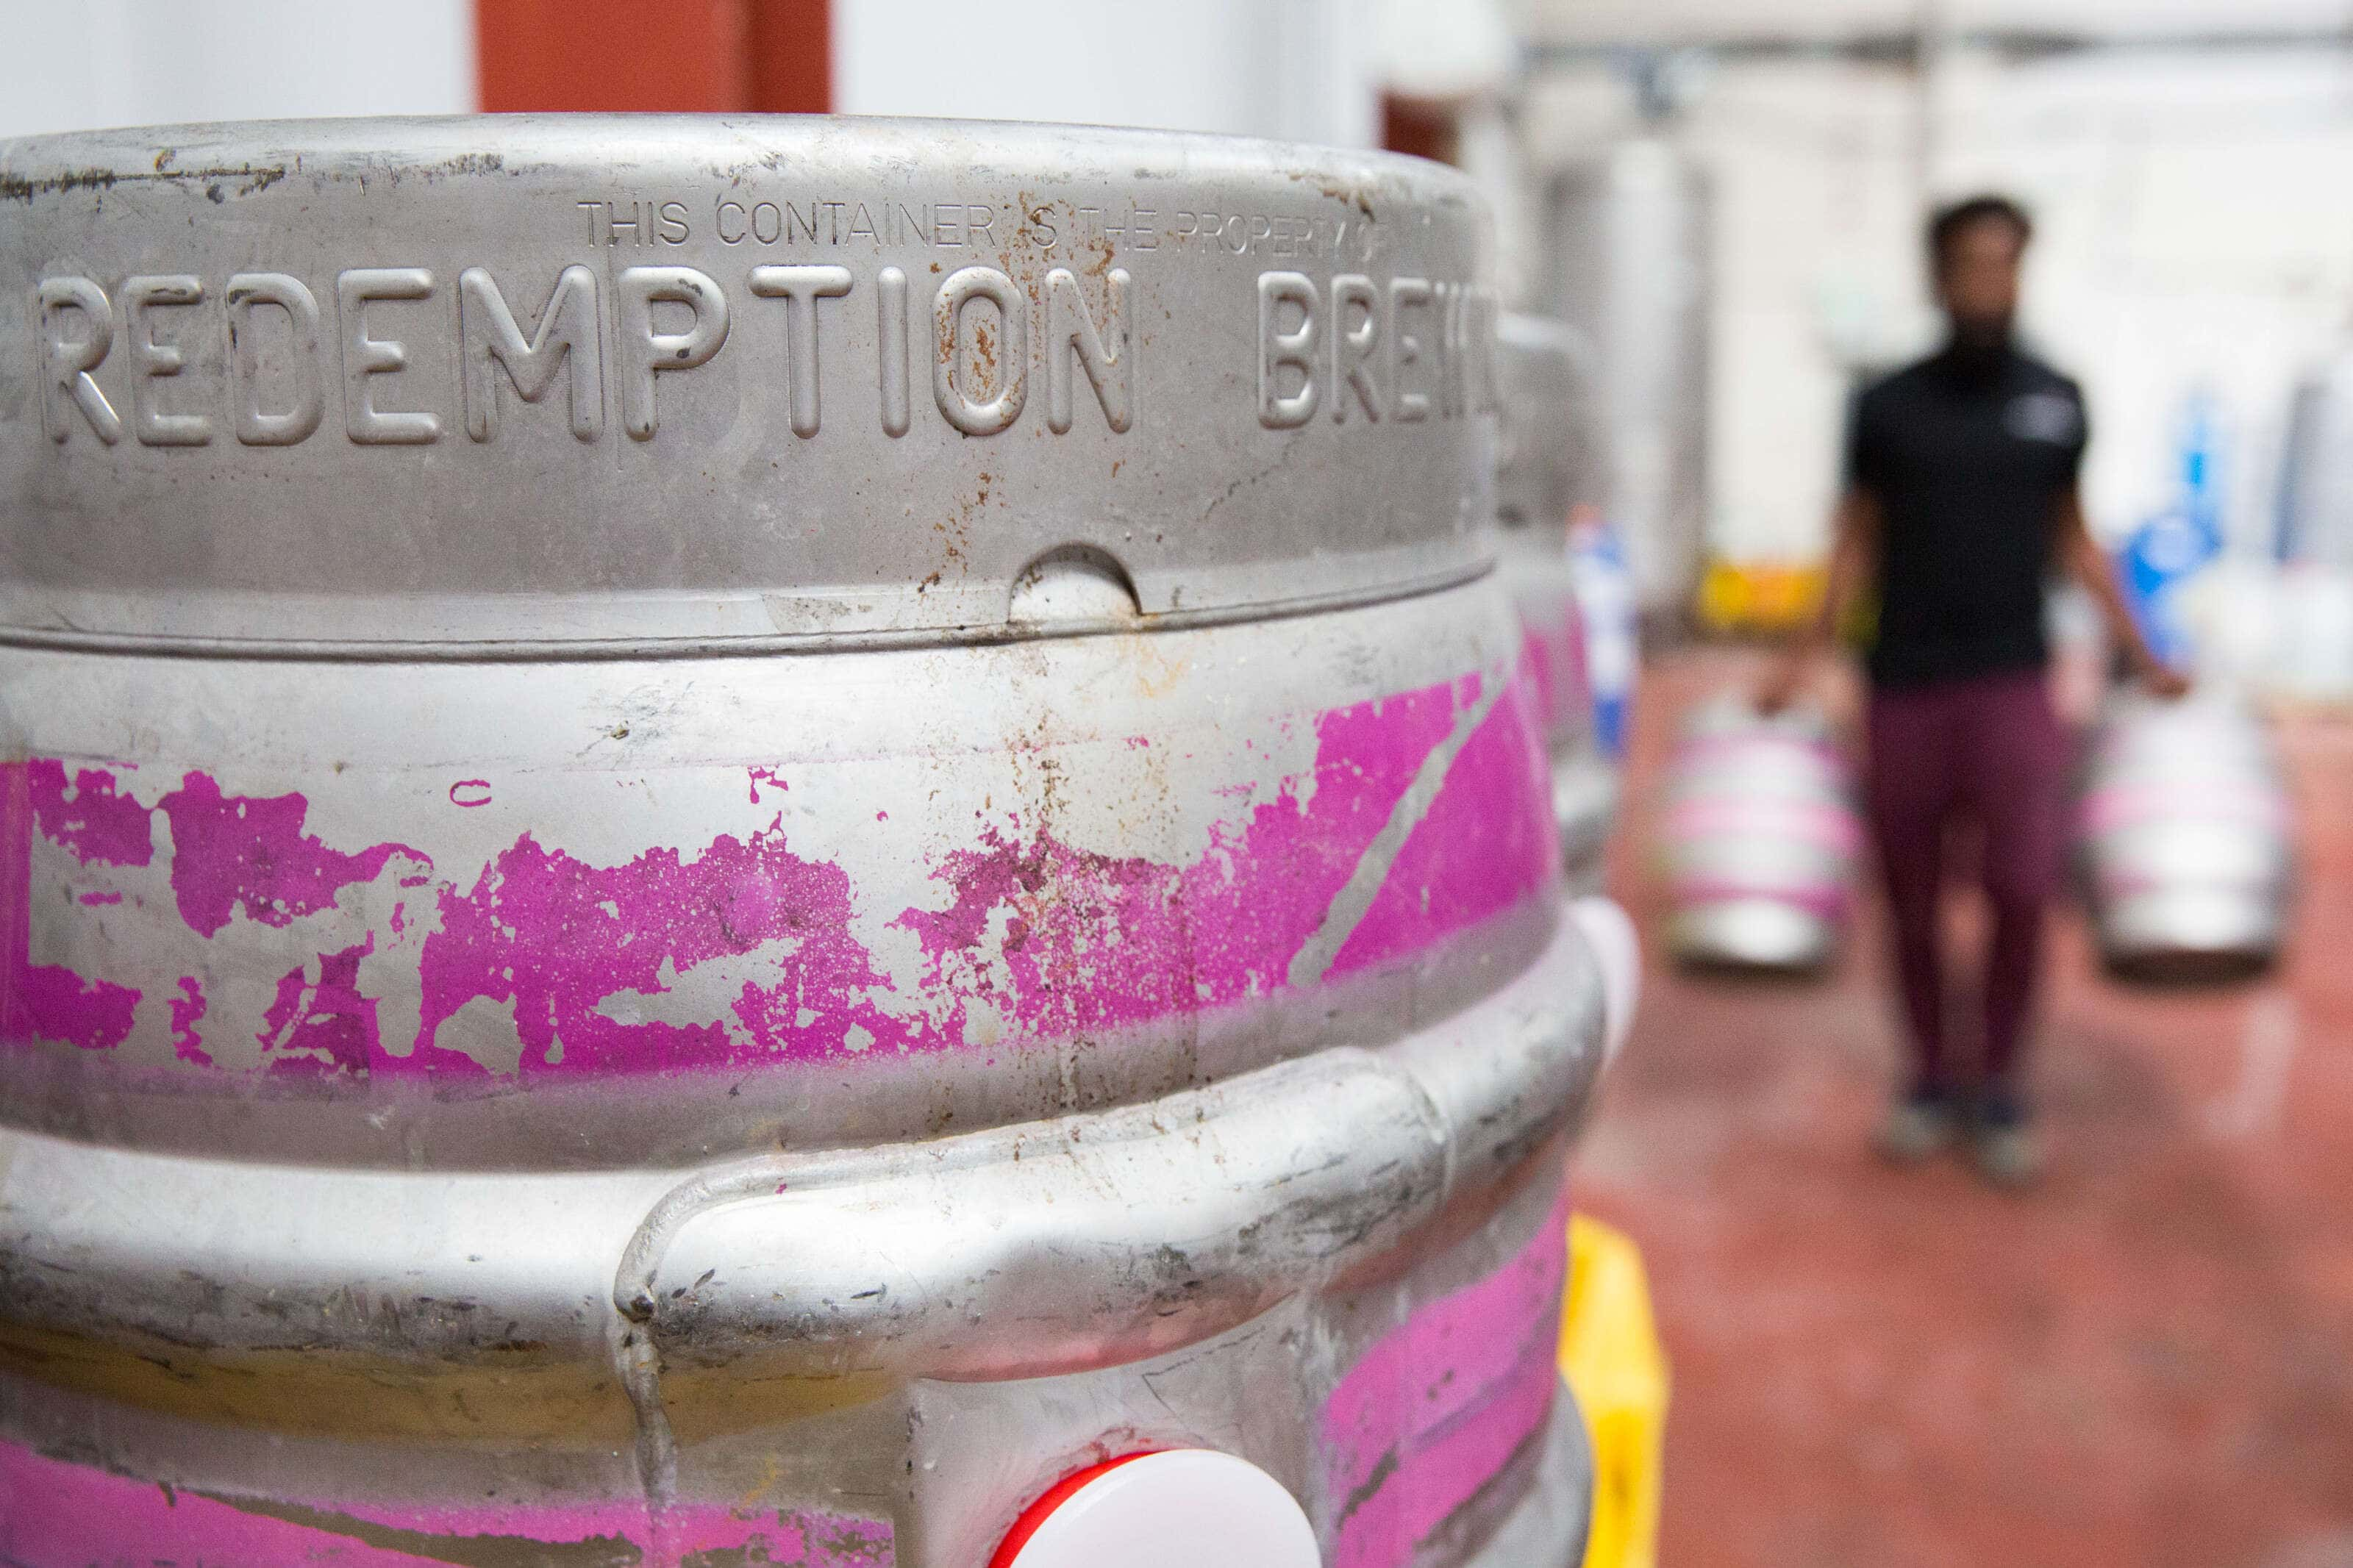 Redemption Brewery cask with a person carryinng two casks in the backgroun